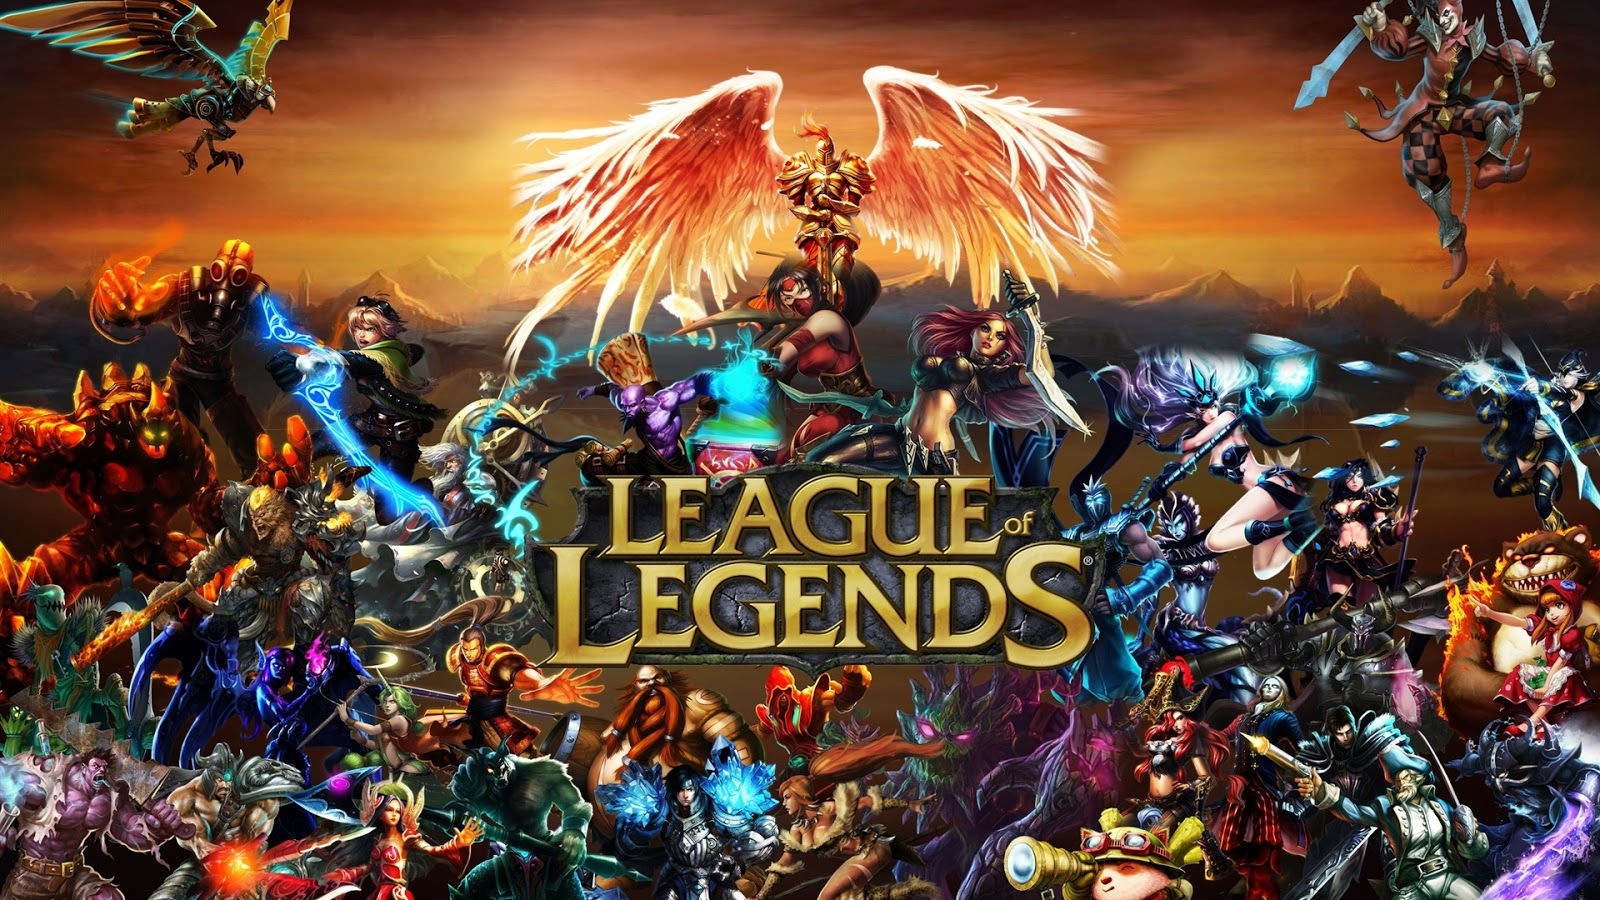 League Of Legends Wallpaper 07 Wallpaper, free league of legends wallpaper images, pictures download